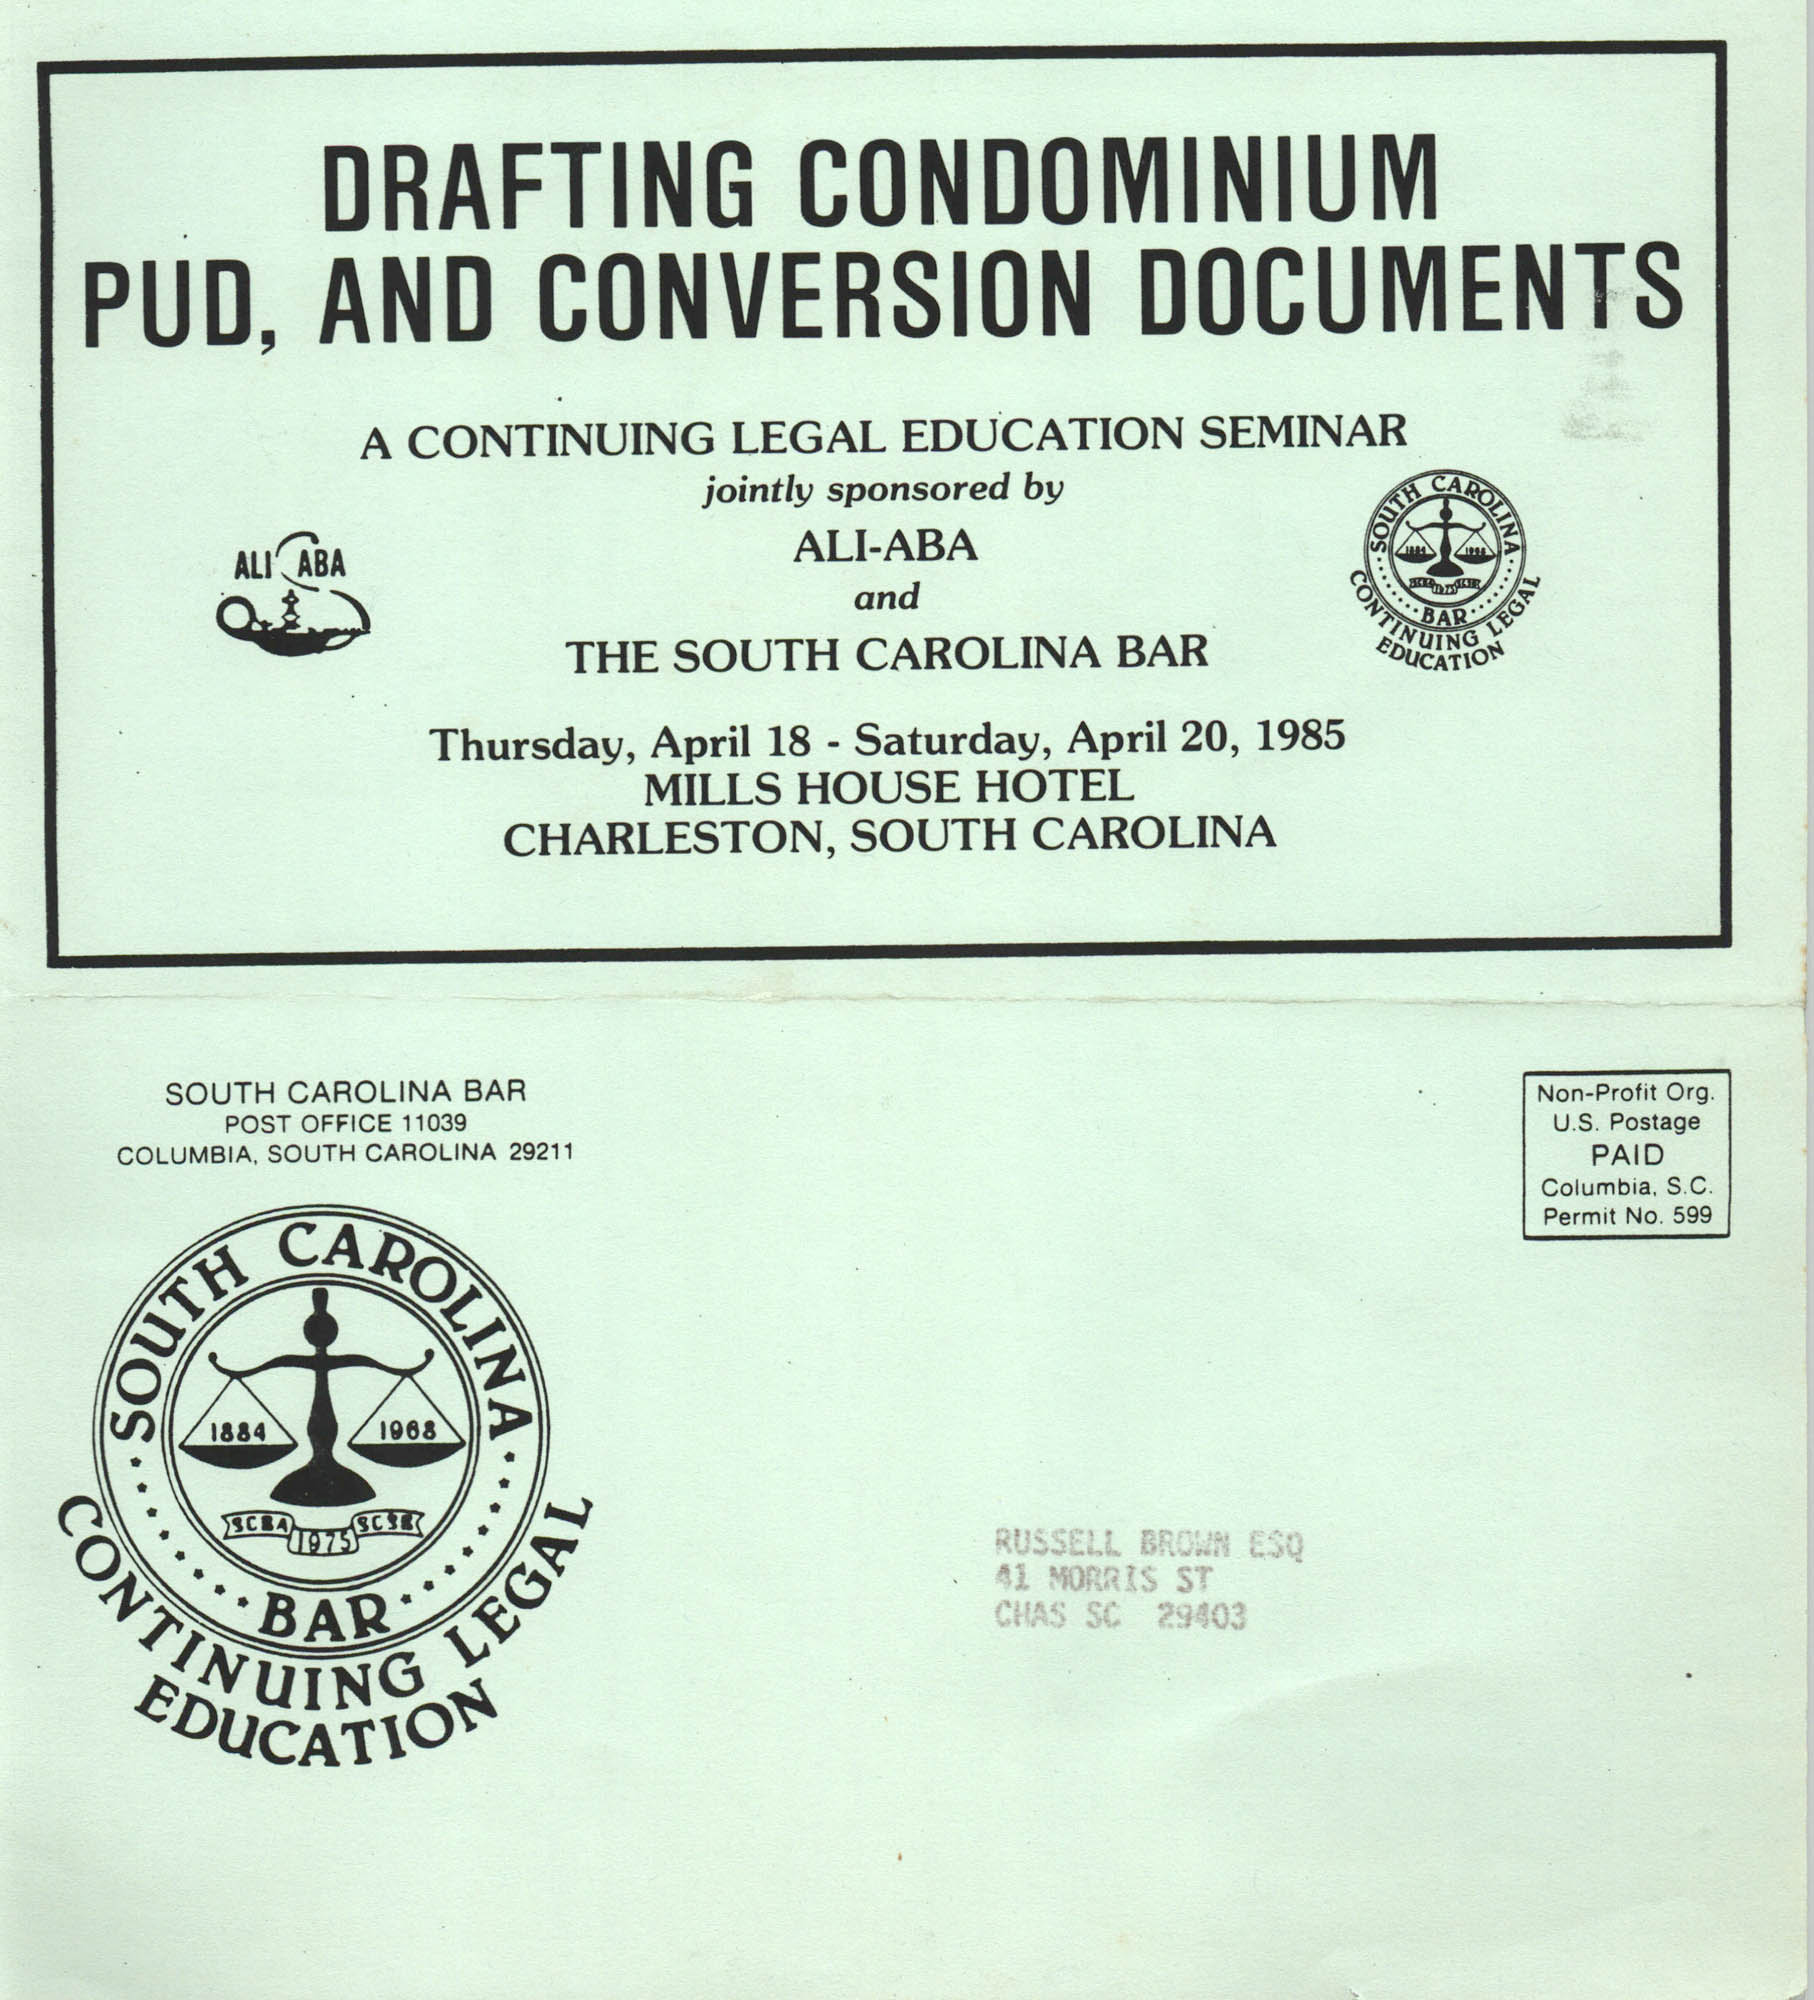 Drafting Condominium PUD, and Conversion Documents, Continuing Legal Education Seminar Pamphlet, April 18-20, 1985, Russell Brown